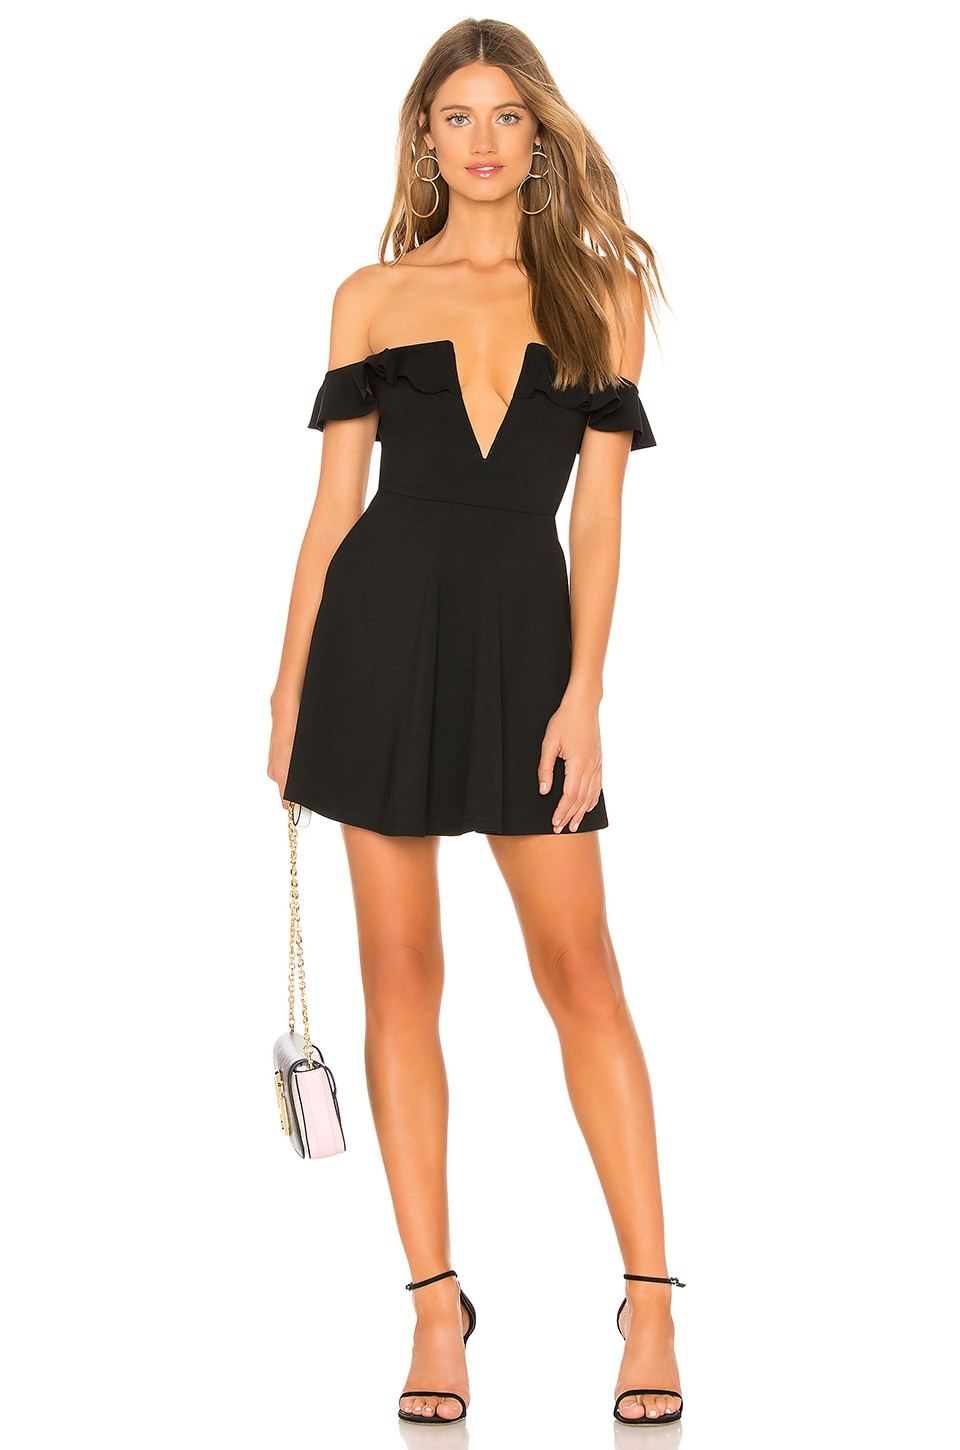 MAJORELLE Poise Dress in Black